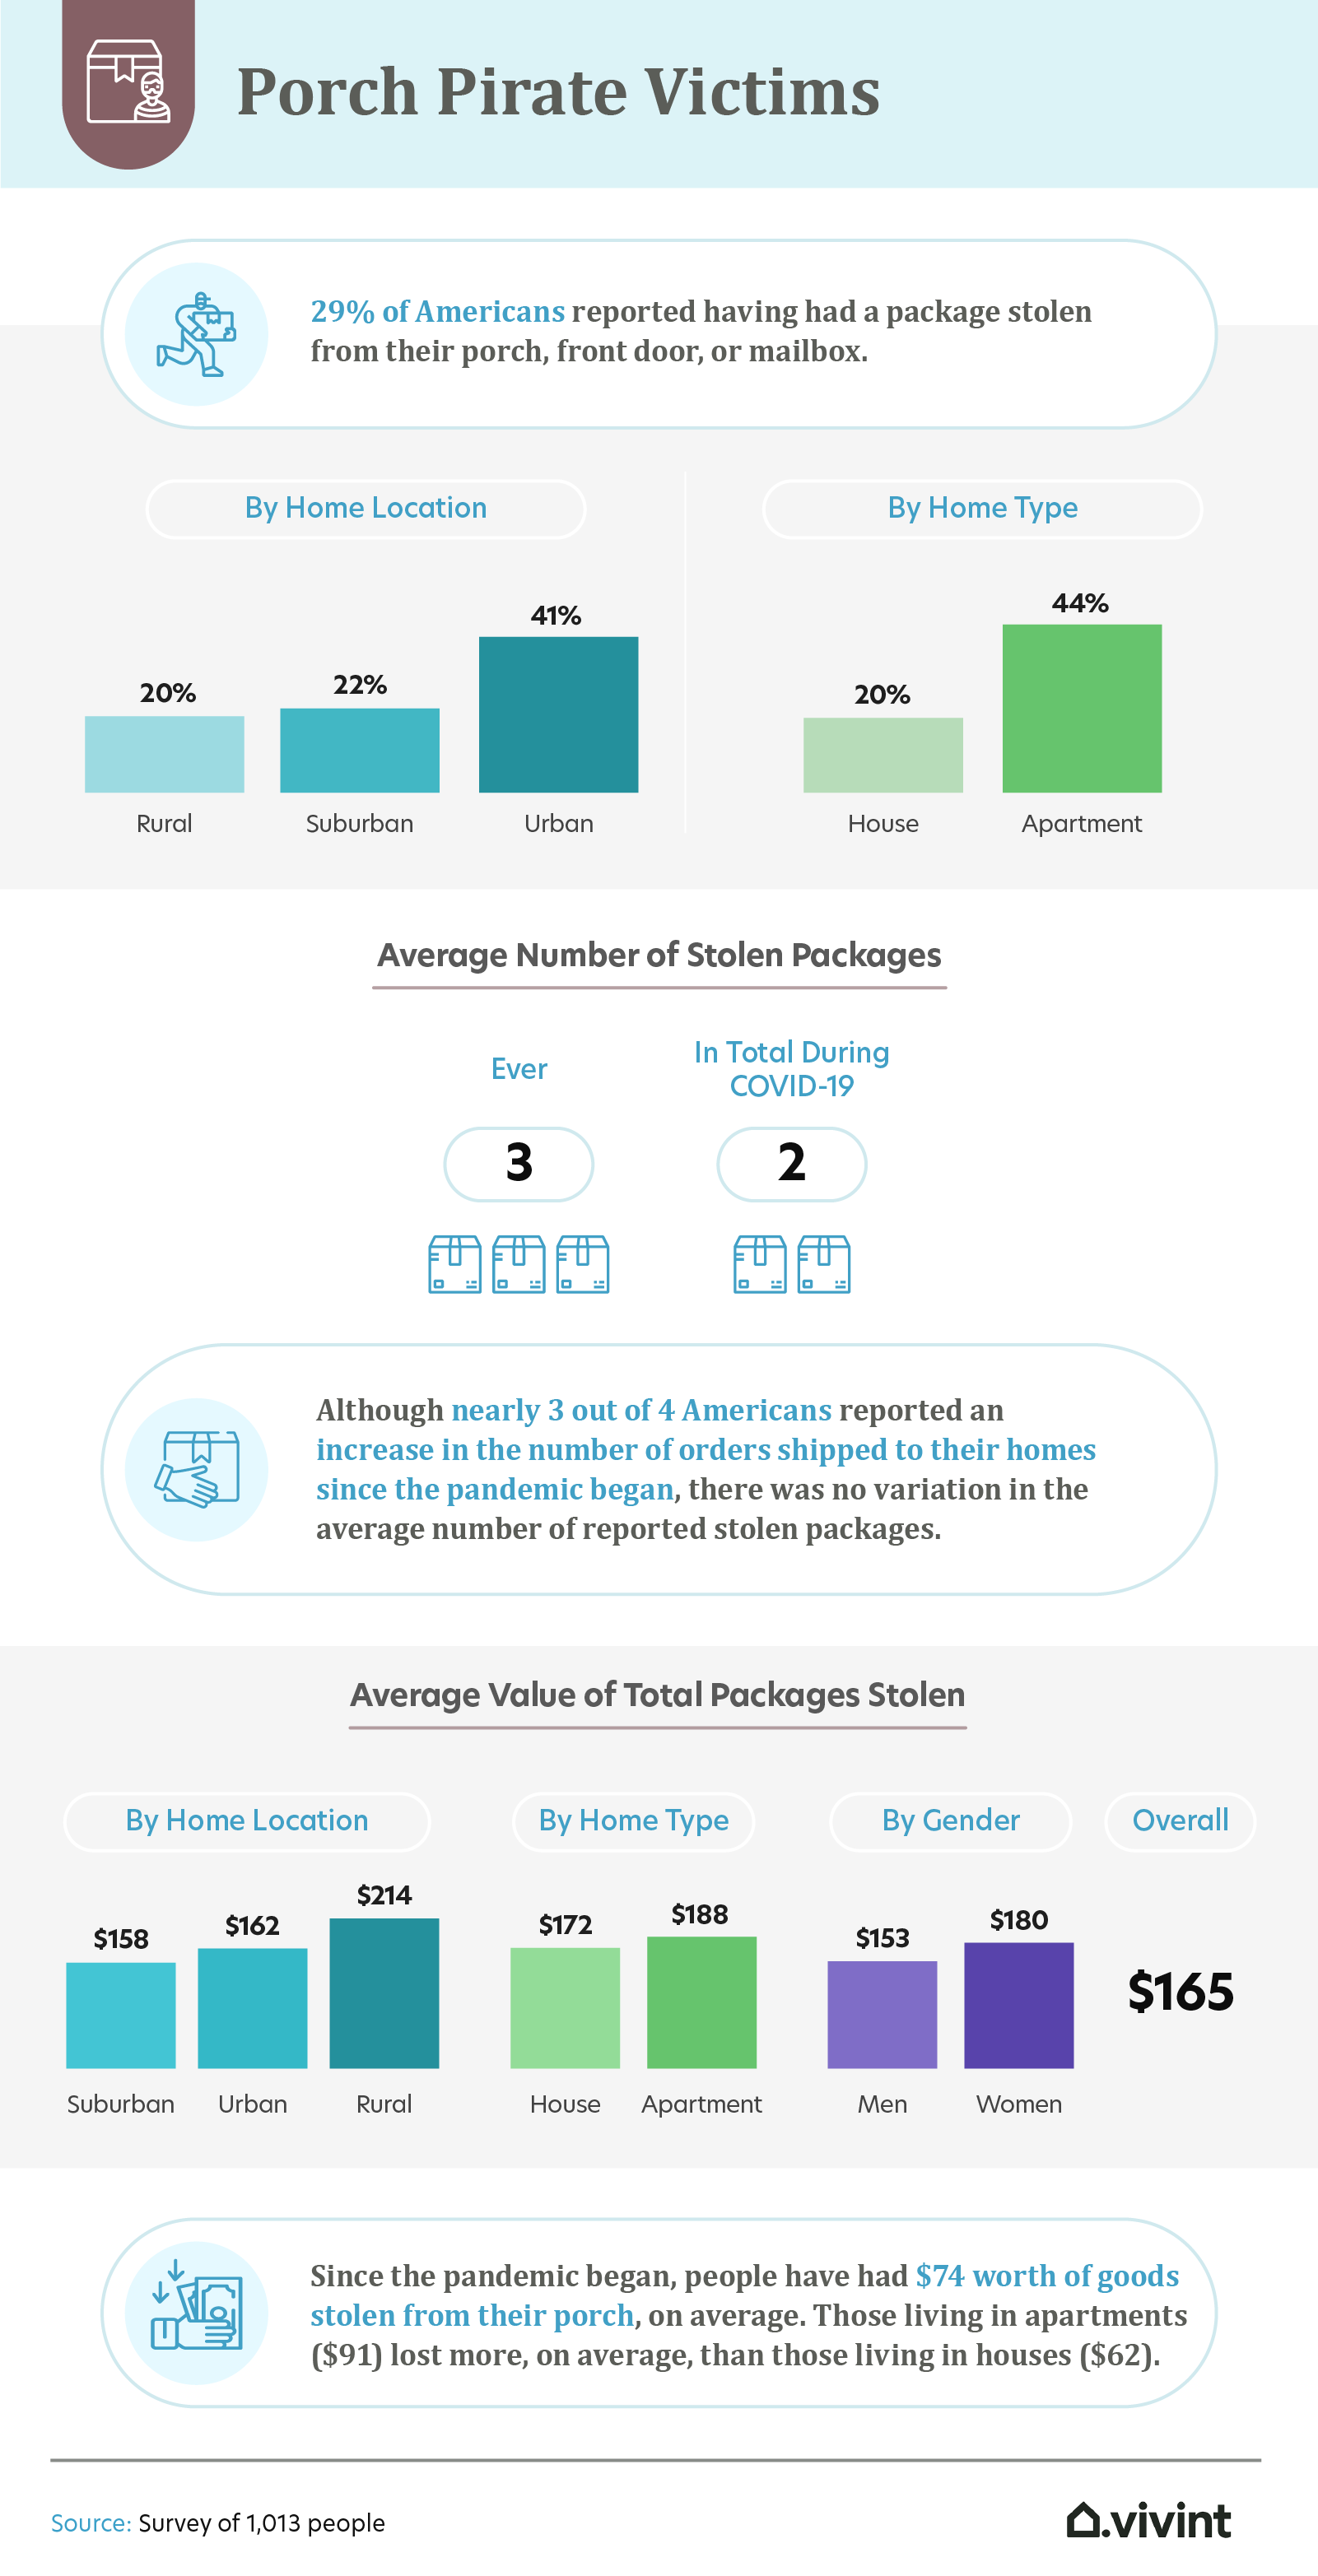 porch pirate victims infographic